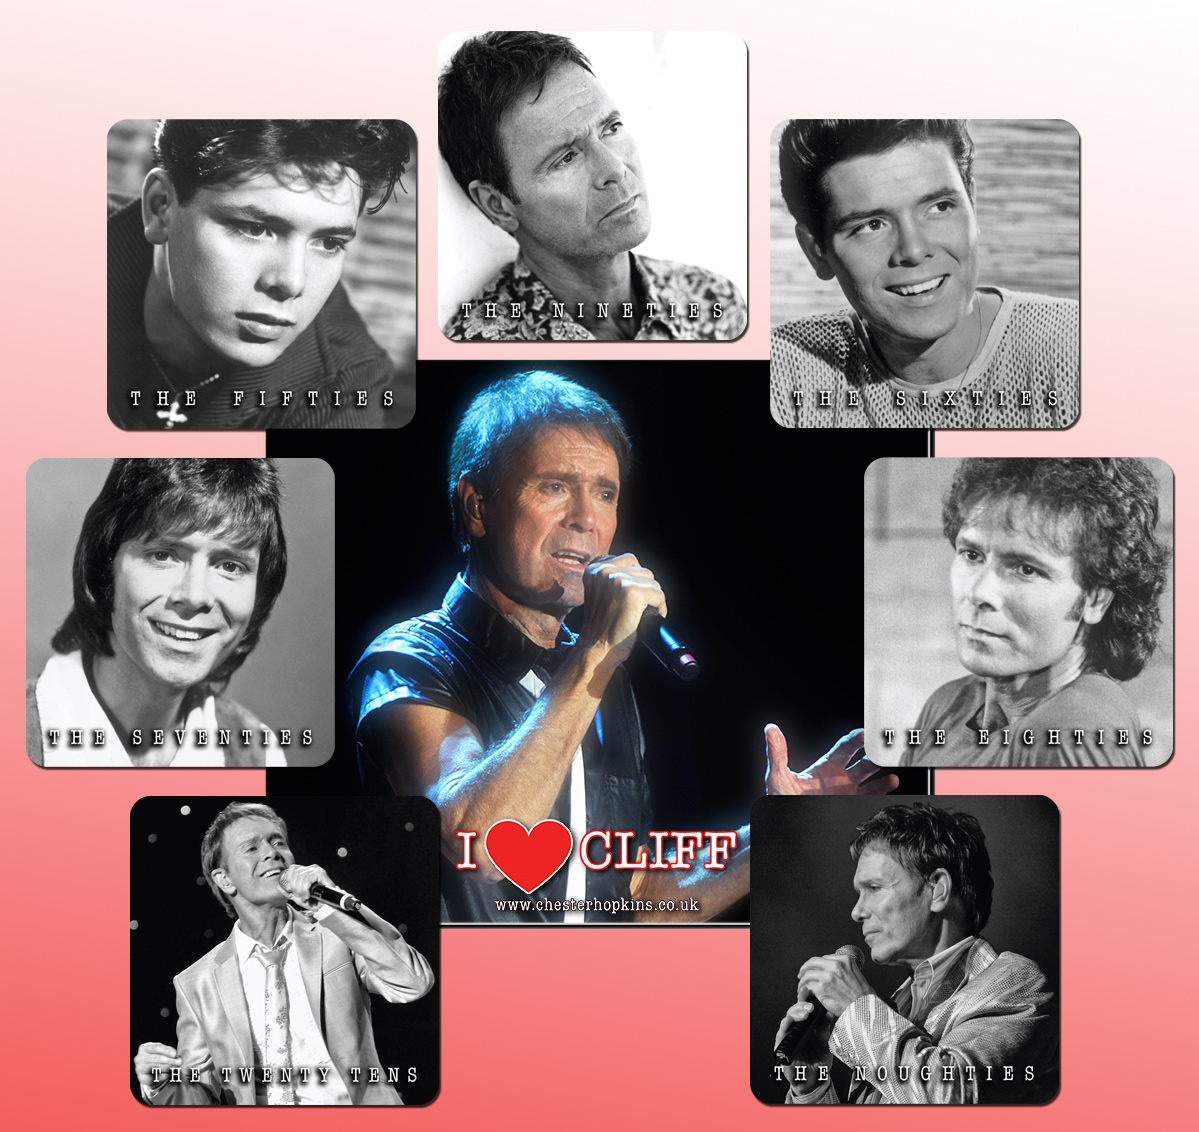 Cliff Richard mousemat and 7 coasters celebrating Cliff through the decades.